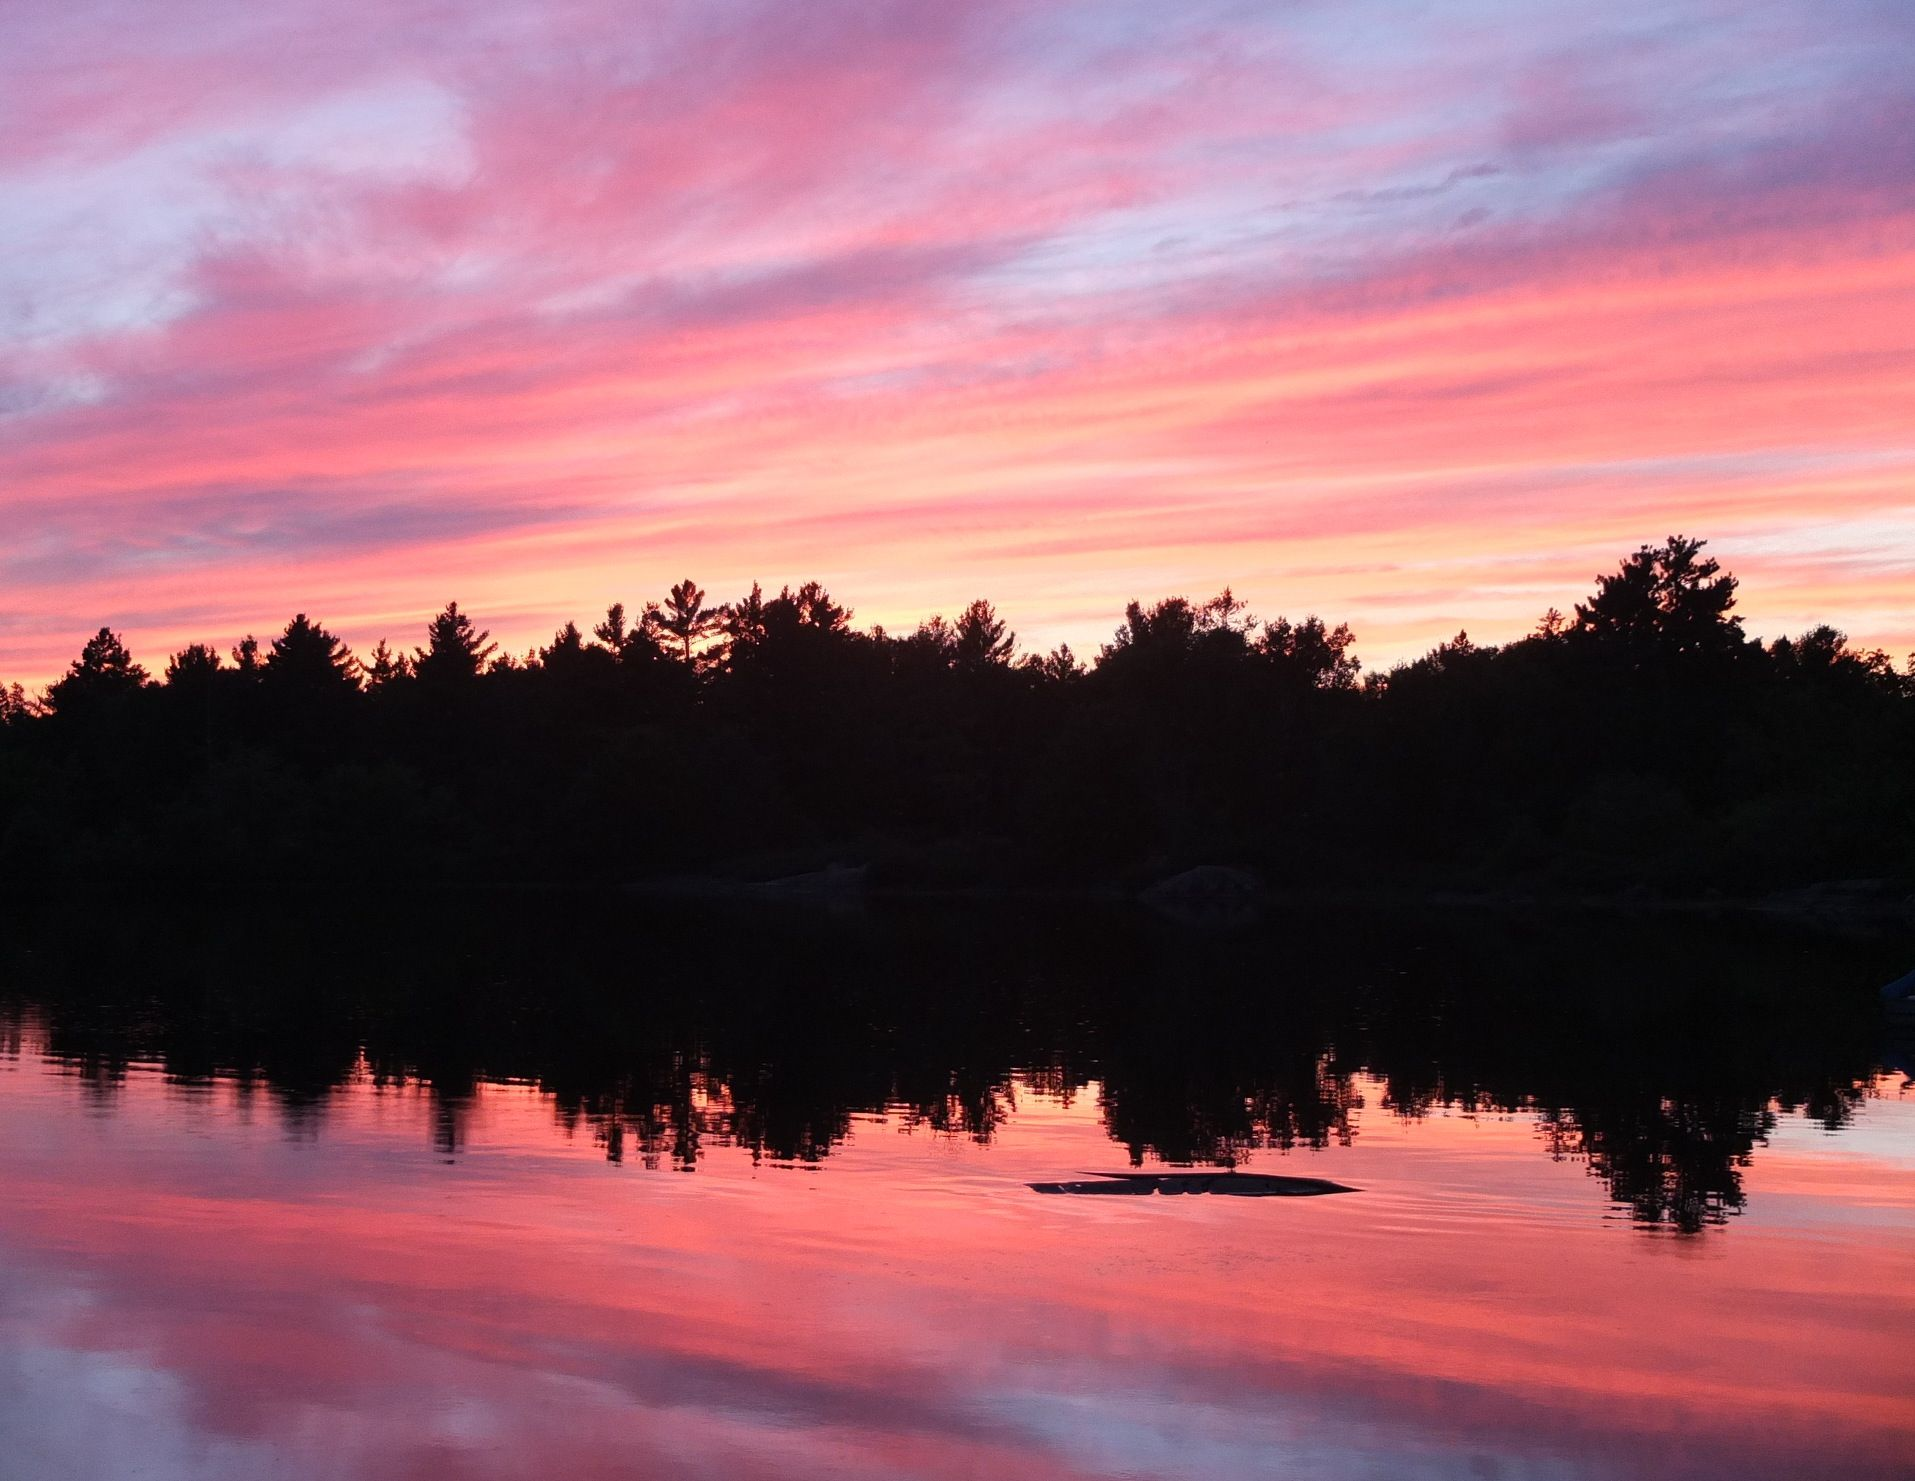 A colourful sunset in Ontario cottage country.  It was beautiful end to a beautiful day.